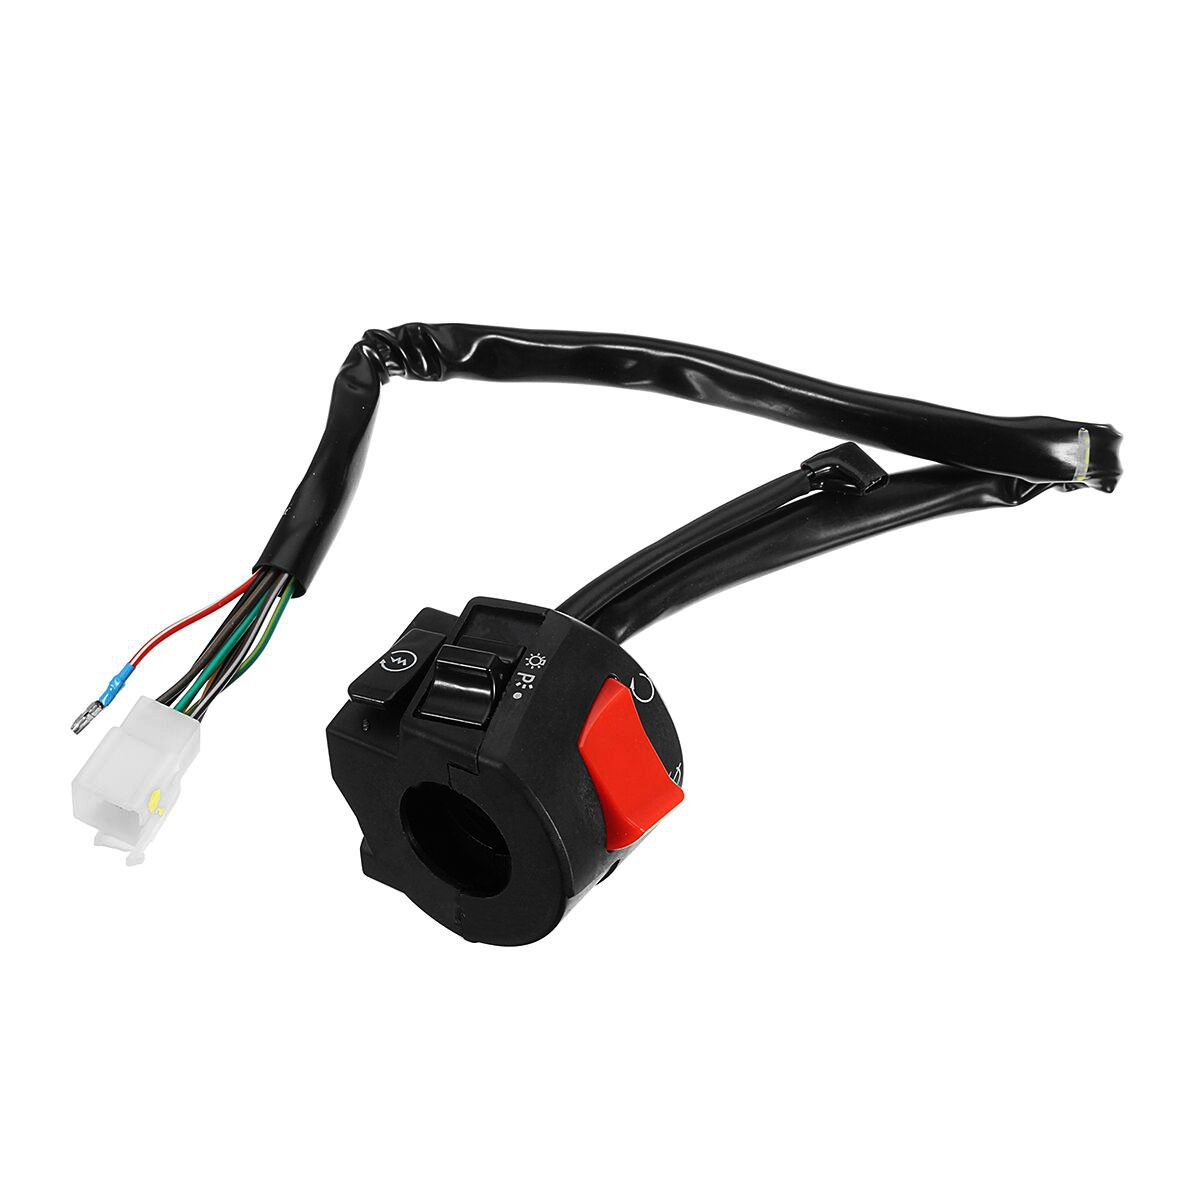 7/8inch 22mm Motorcycle Handlebar Horn Turn Light Electrical Start Switch Right Side